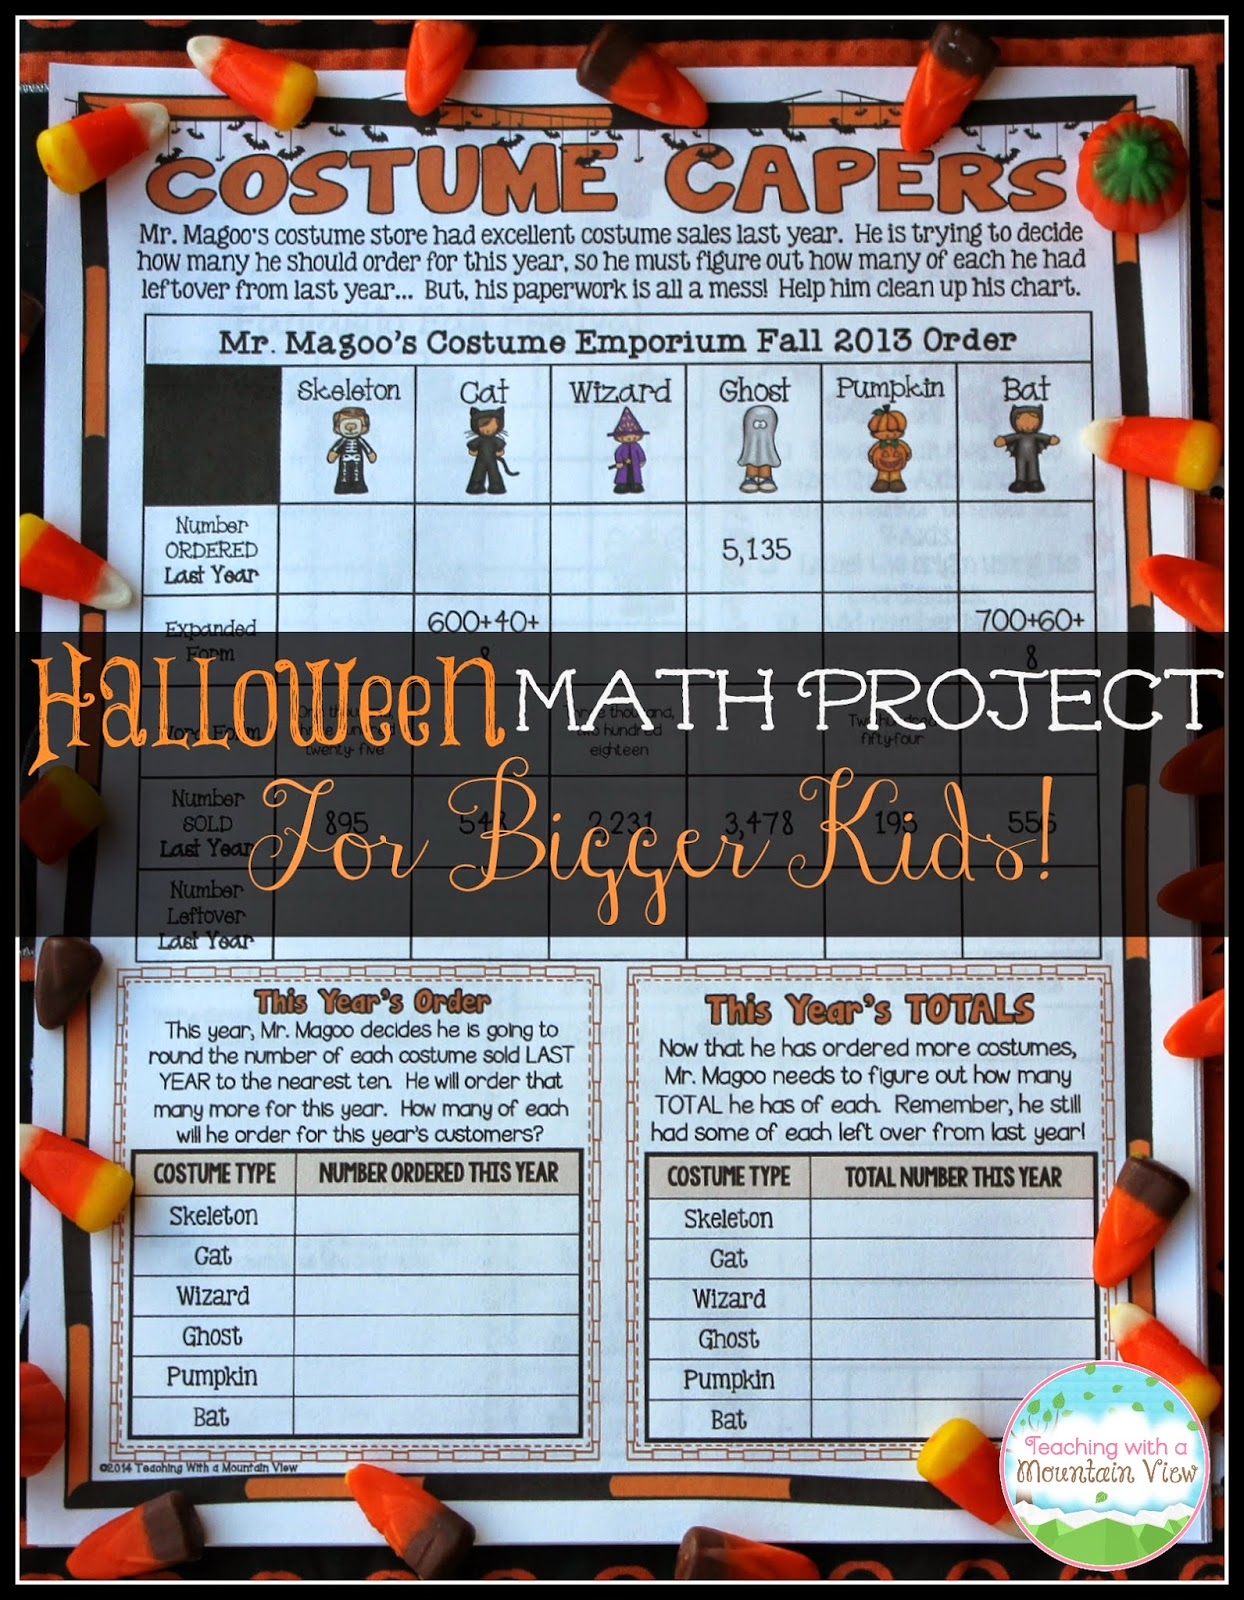 Teaching With a Mountain View: Educational Halloween Activities for ...